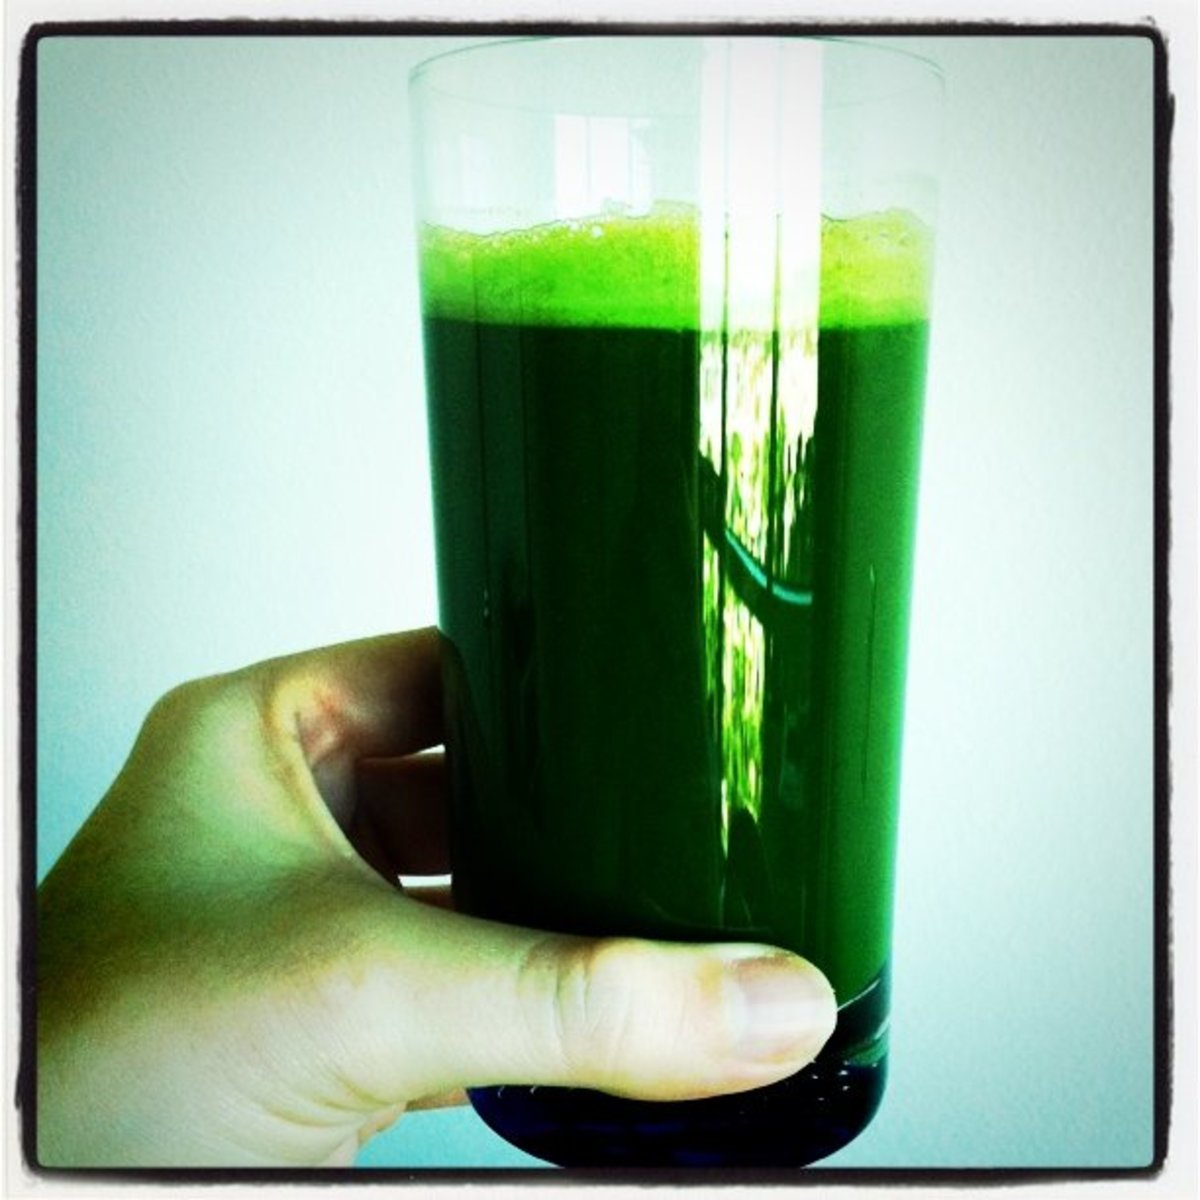 This is about 4 servings of wheat grass juice shot.